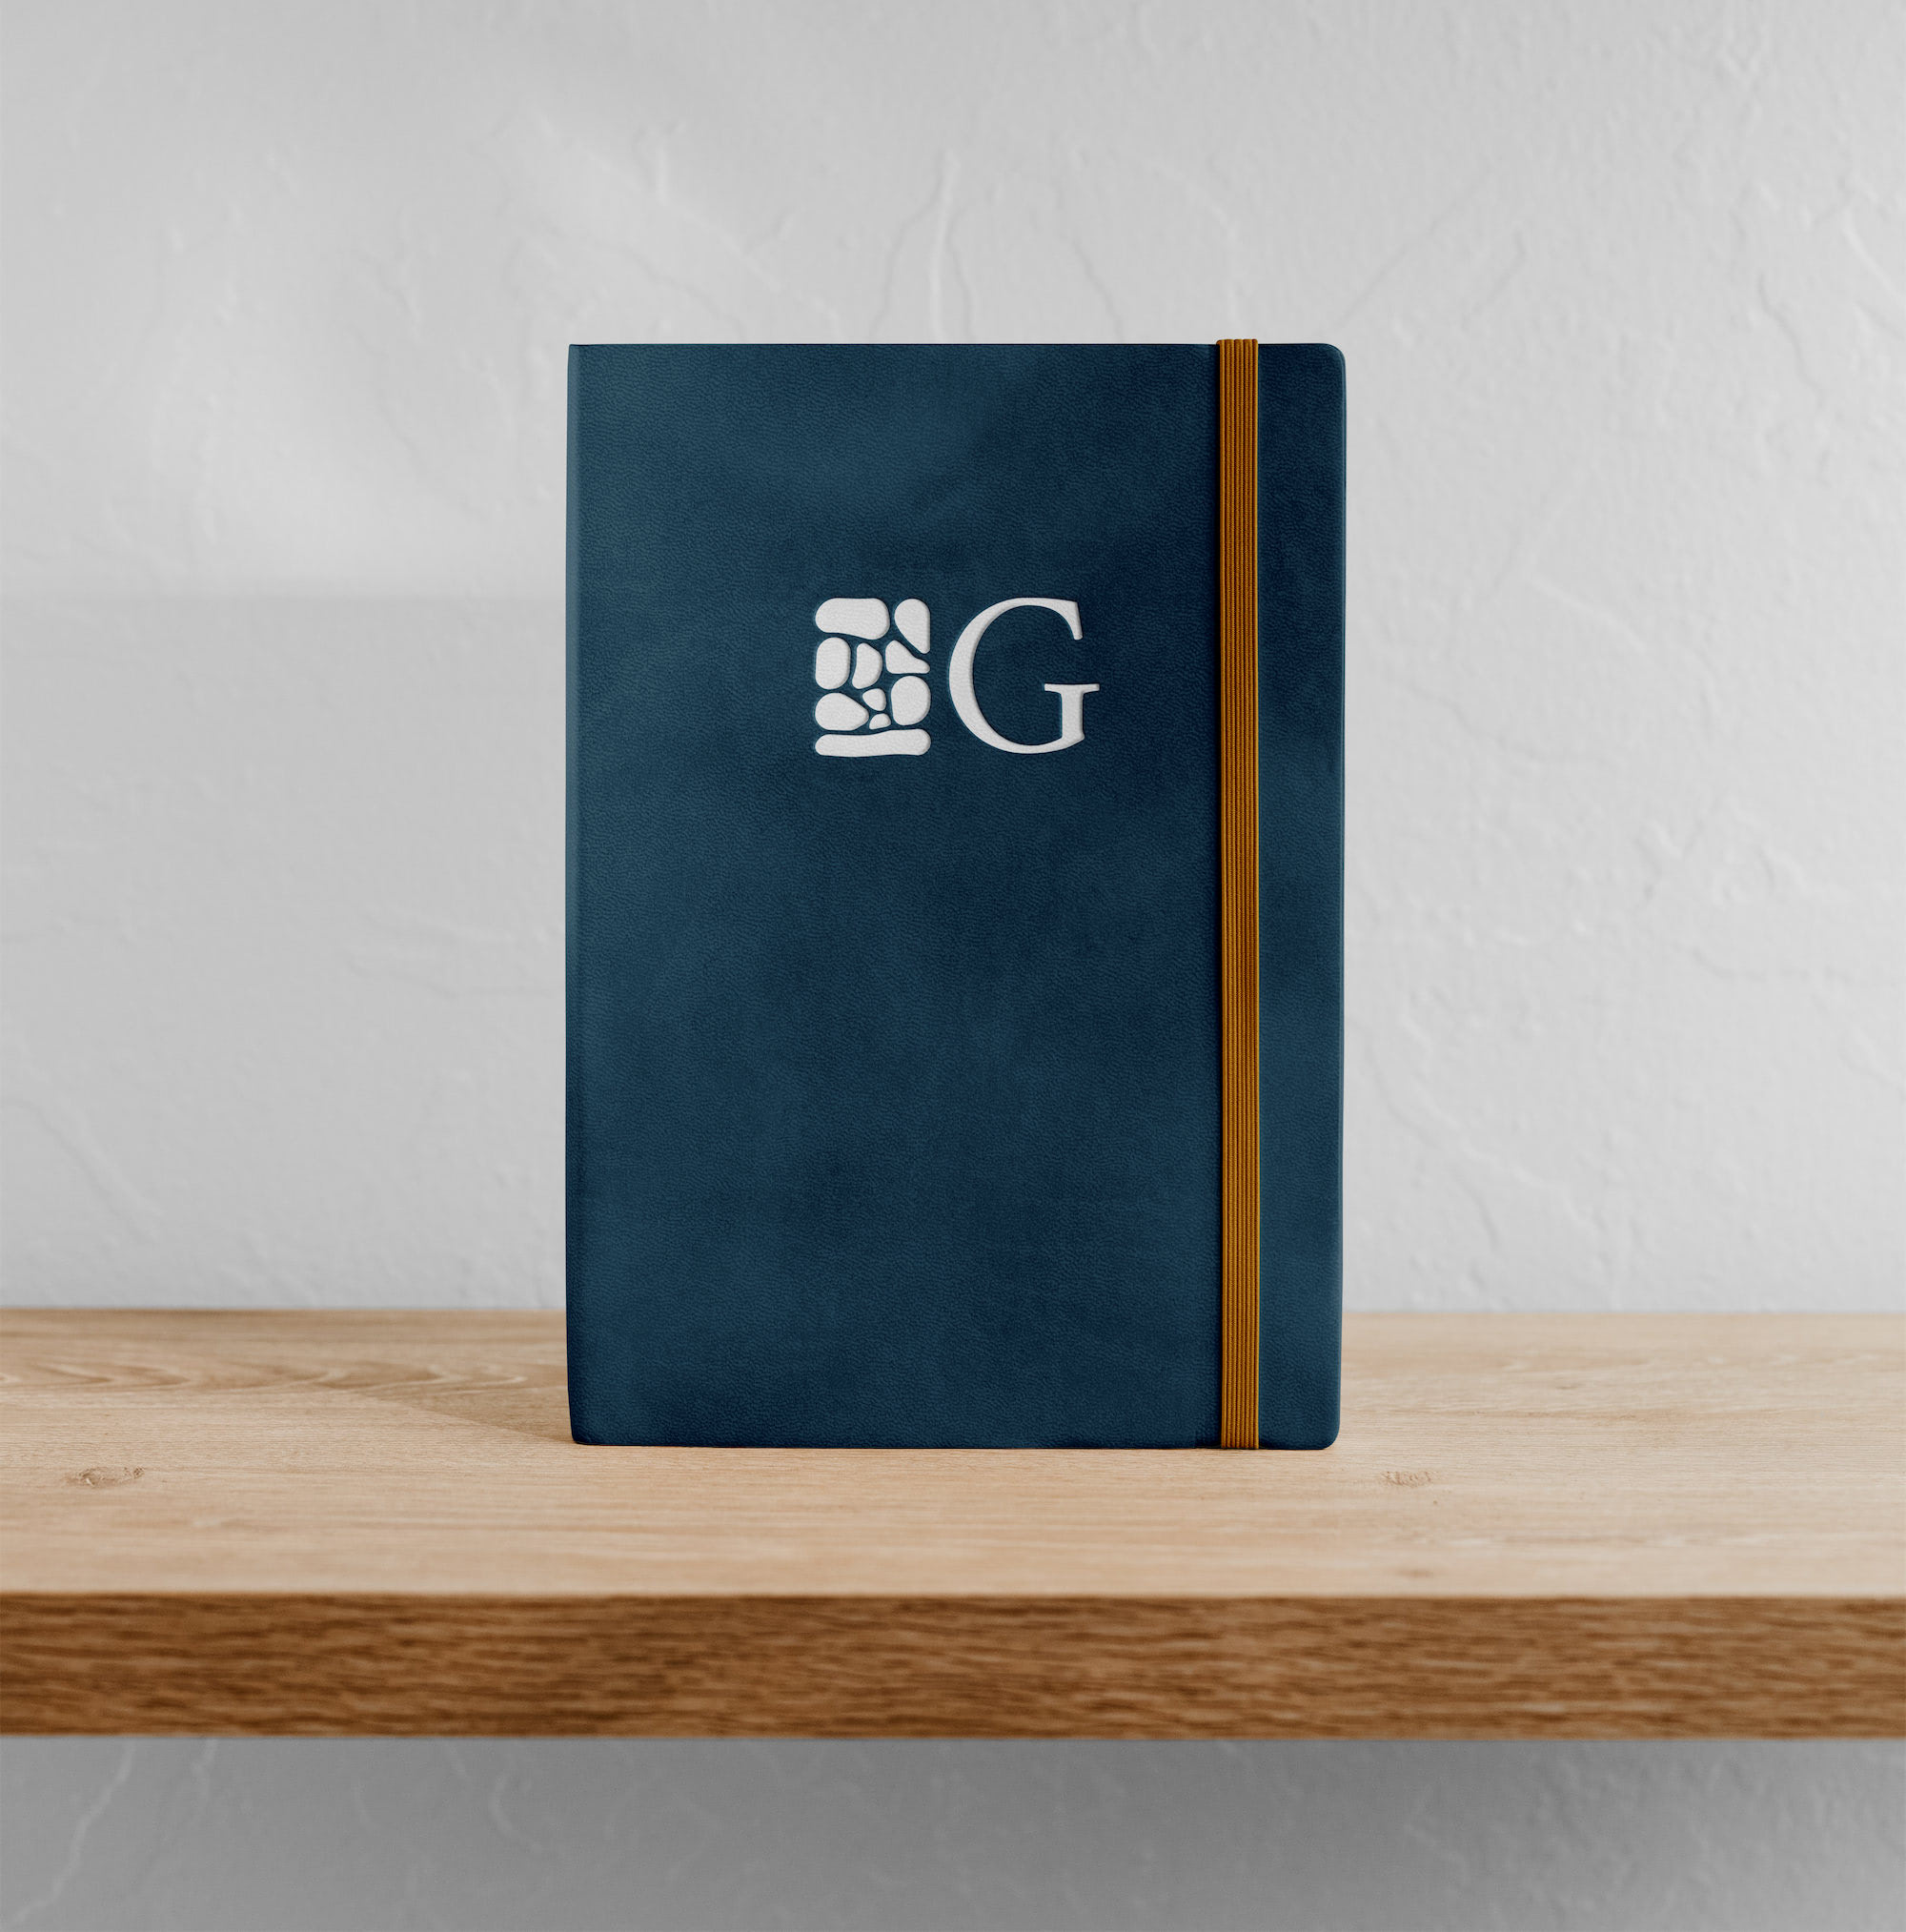 Gather Financial™ Planning logo submark with stone mark and letter 'G' mocked up on a leather bound notebook